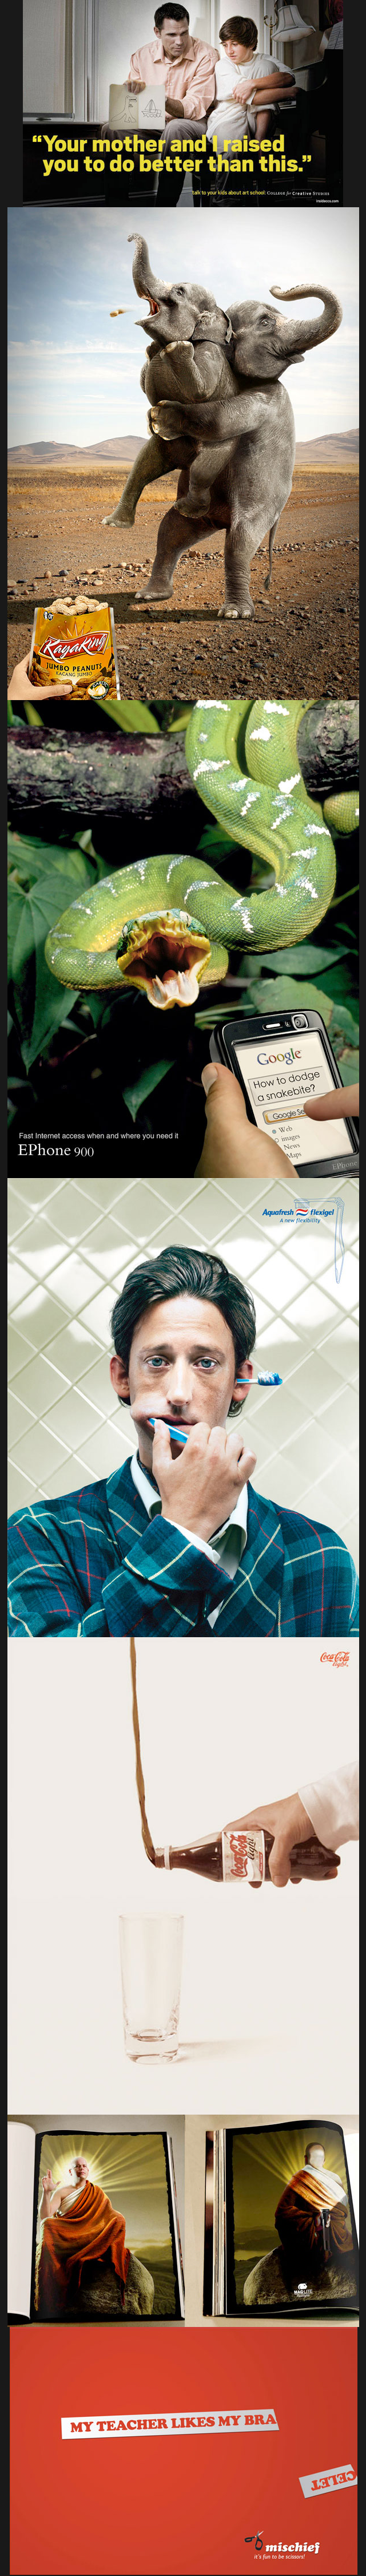 Funny Ad Comp 2. i liek ur but.. thats the best damn scissors ad ive seen. its also the only scissors ad ive seen